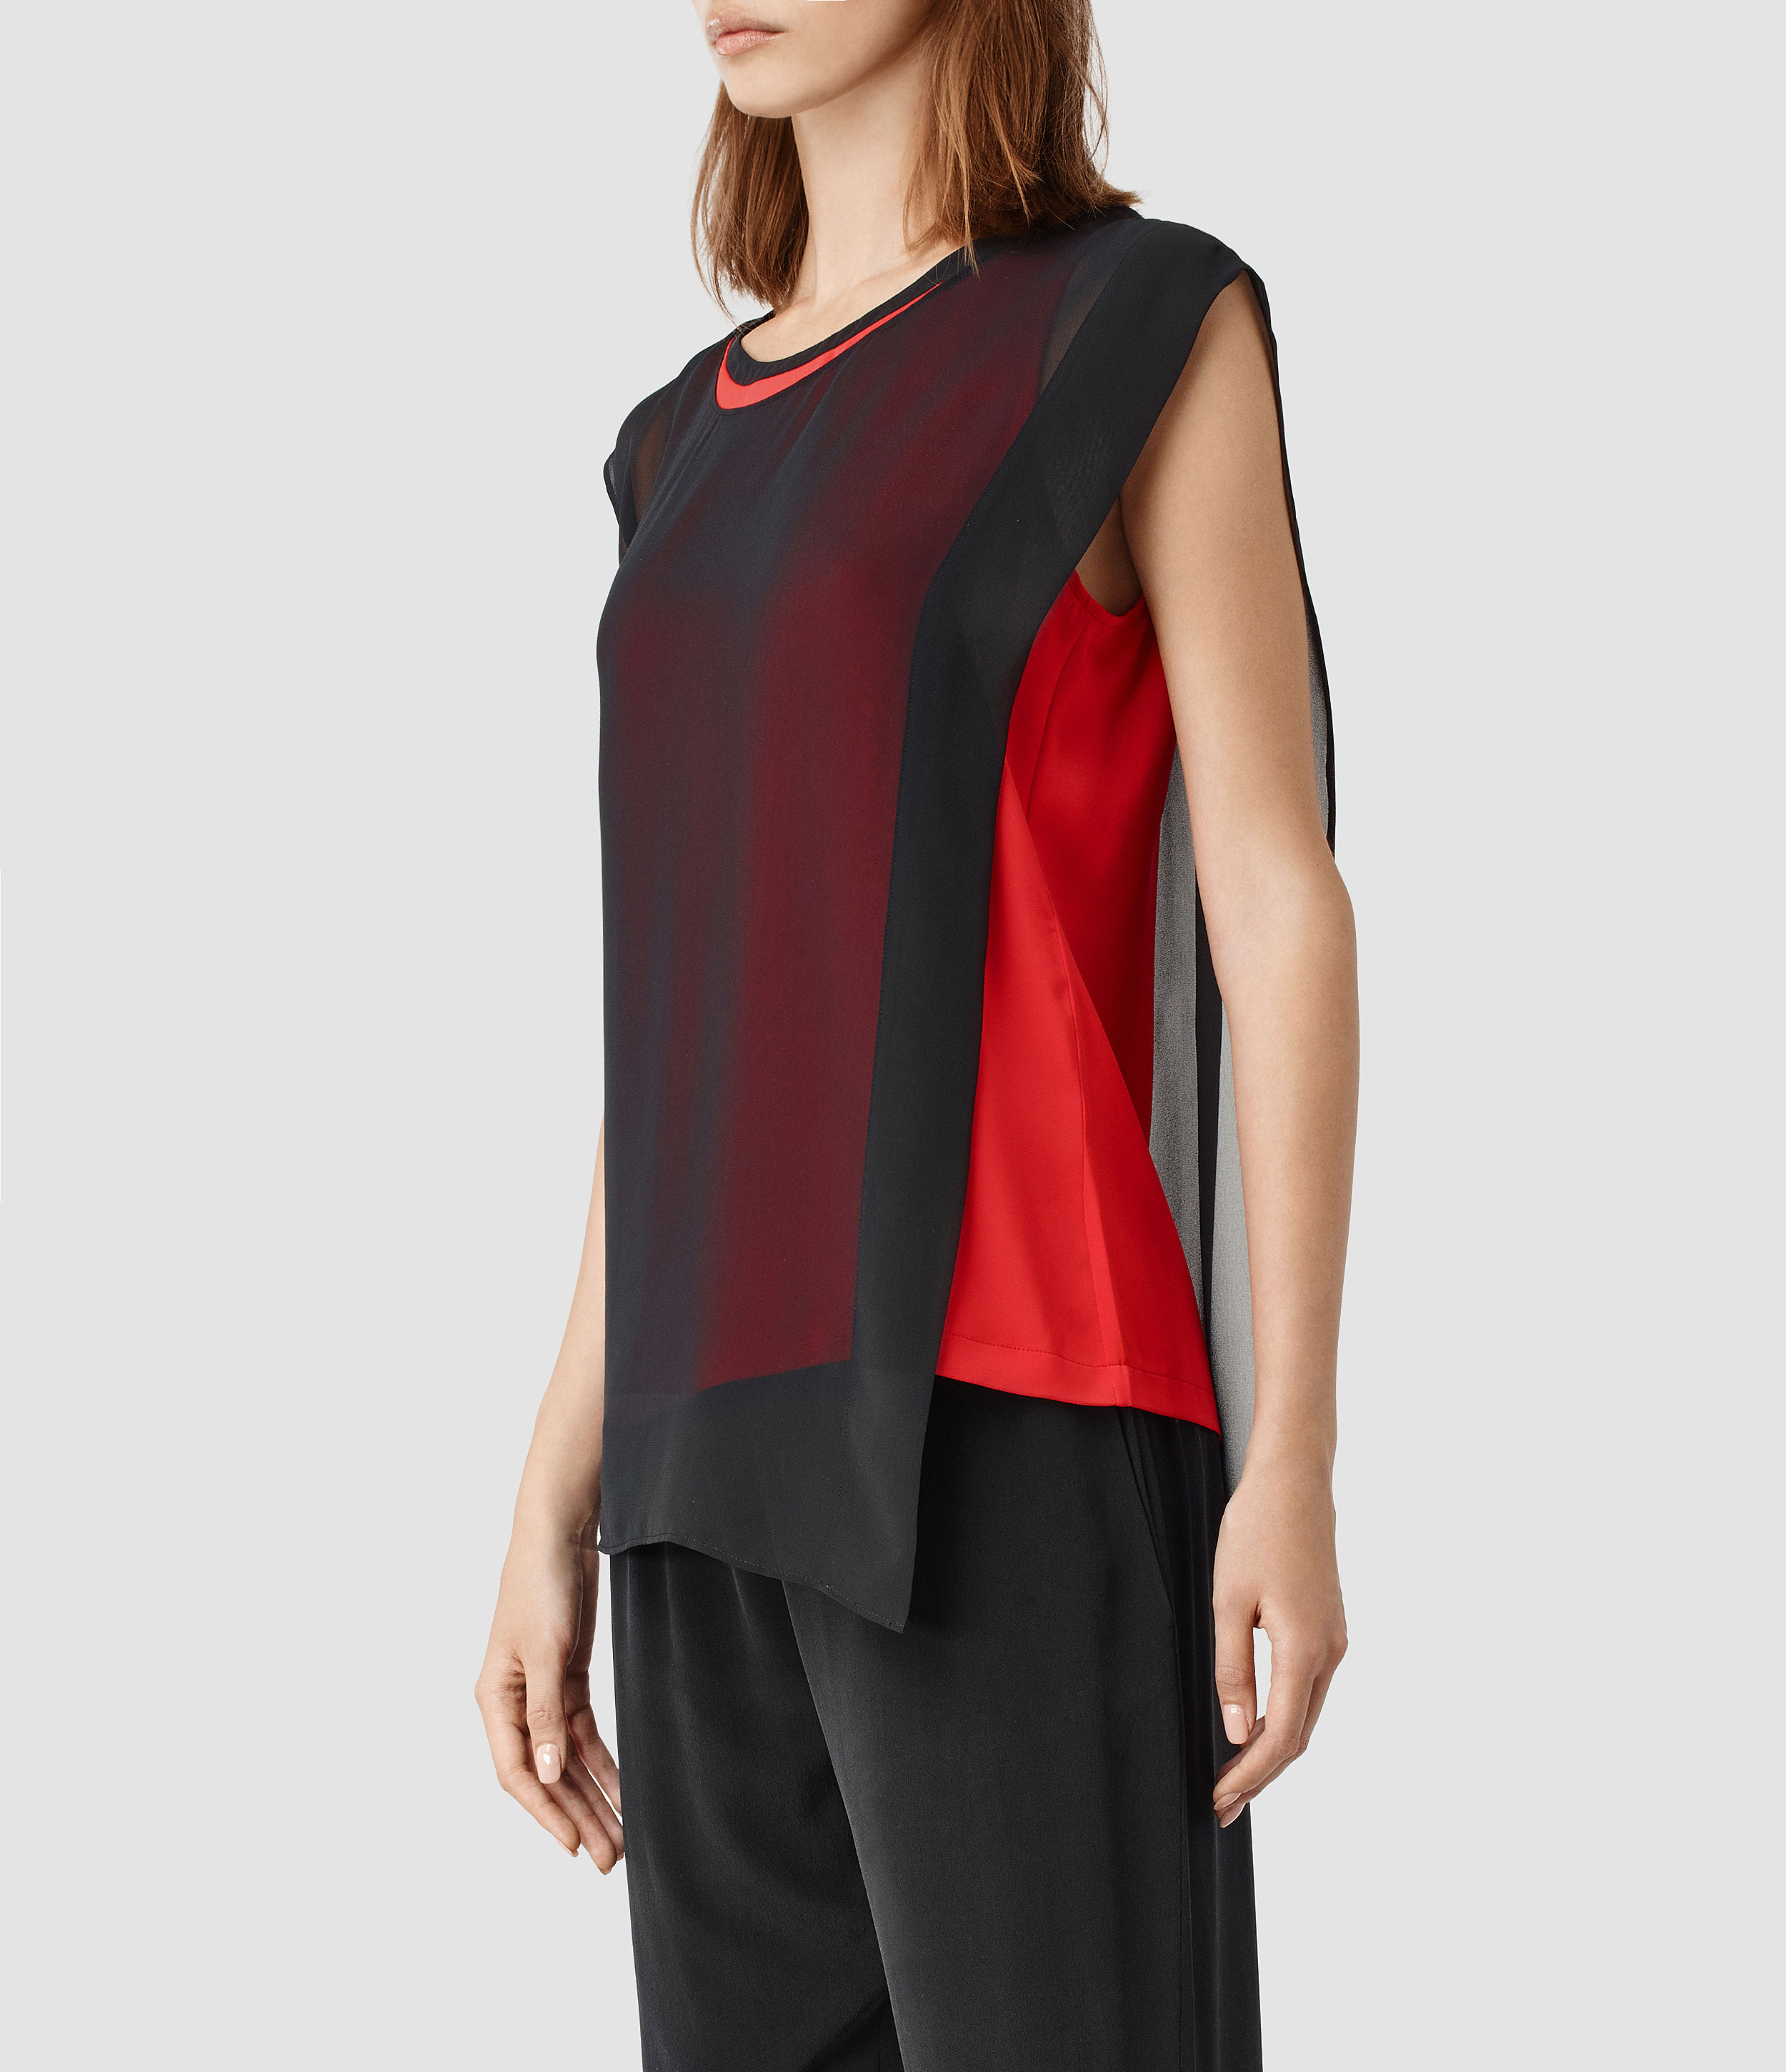 Sleeveless Top - Annie by VIDA VIDA Sale Many Kinds Of Cheap Sale Best Seller Cheapest Online Clearance From China Under 70 Dollars 4A9uga9E